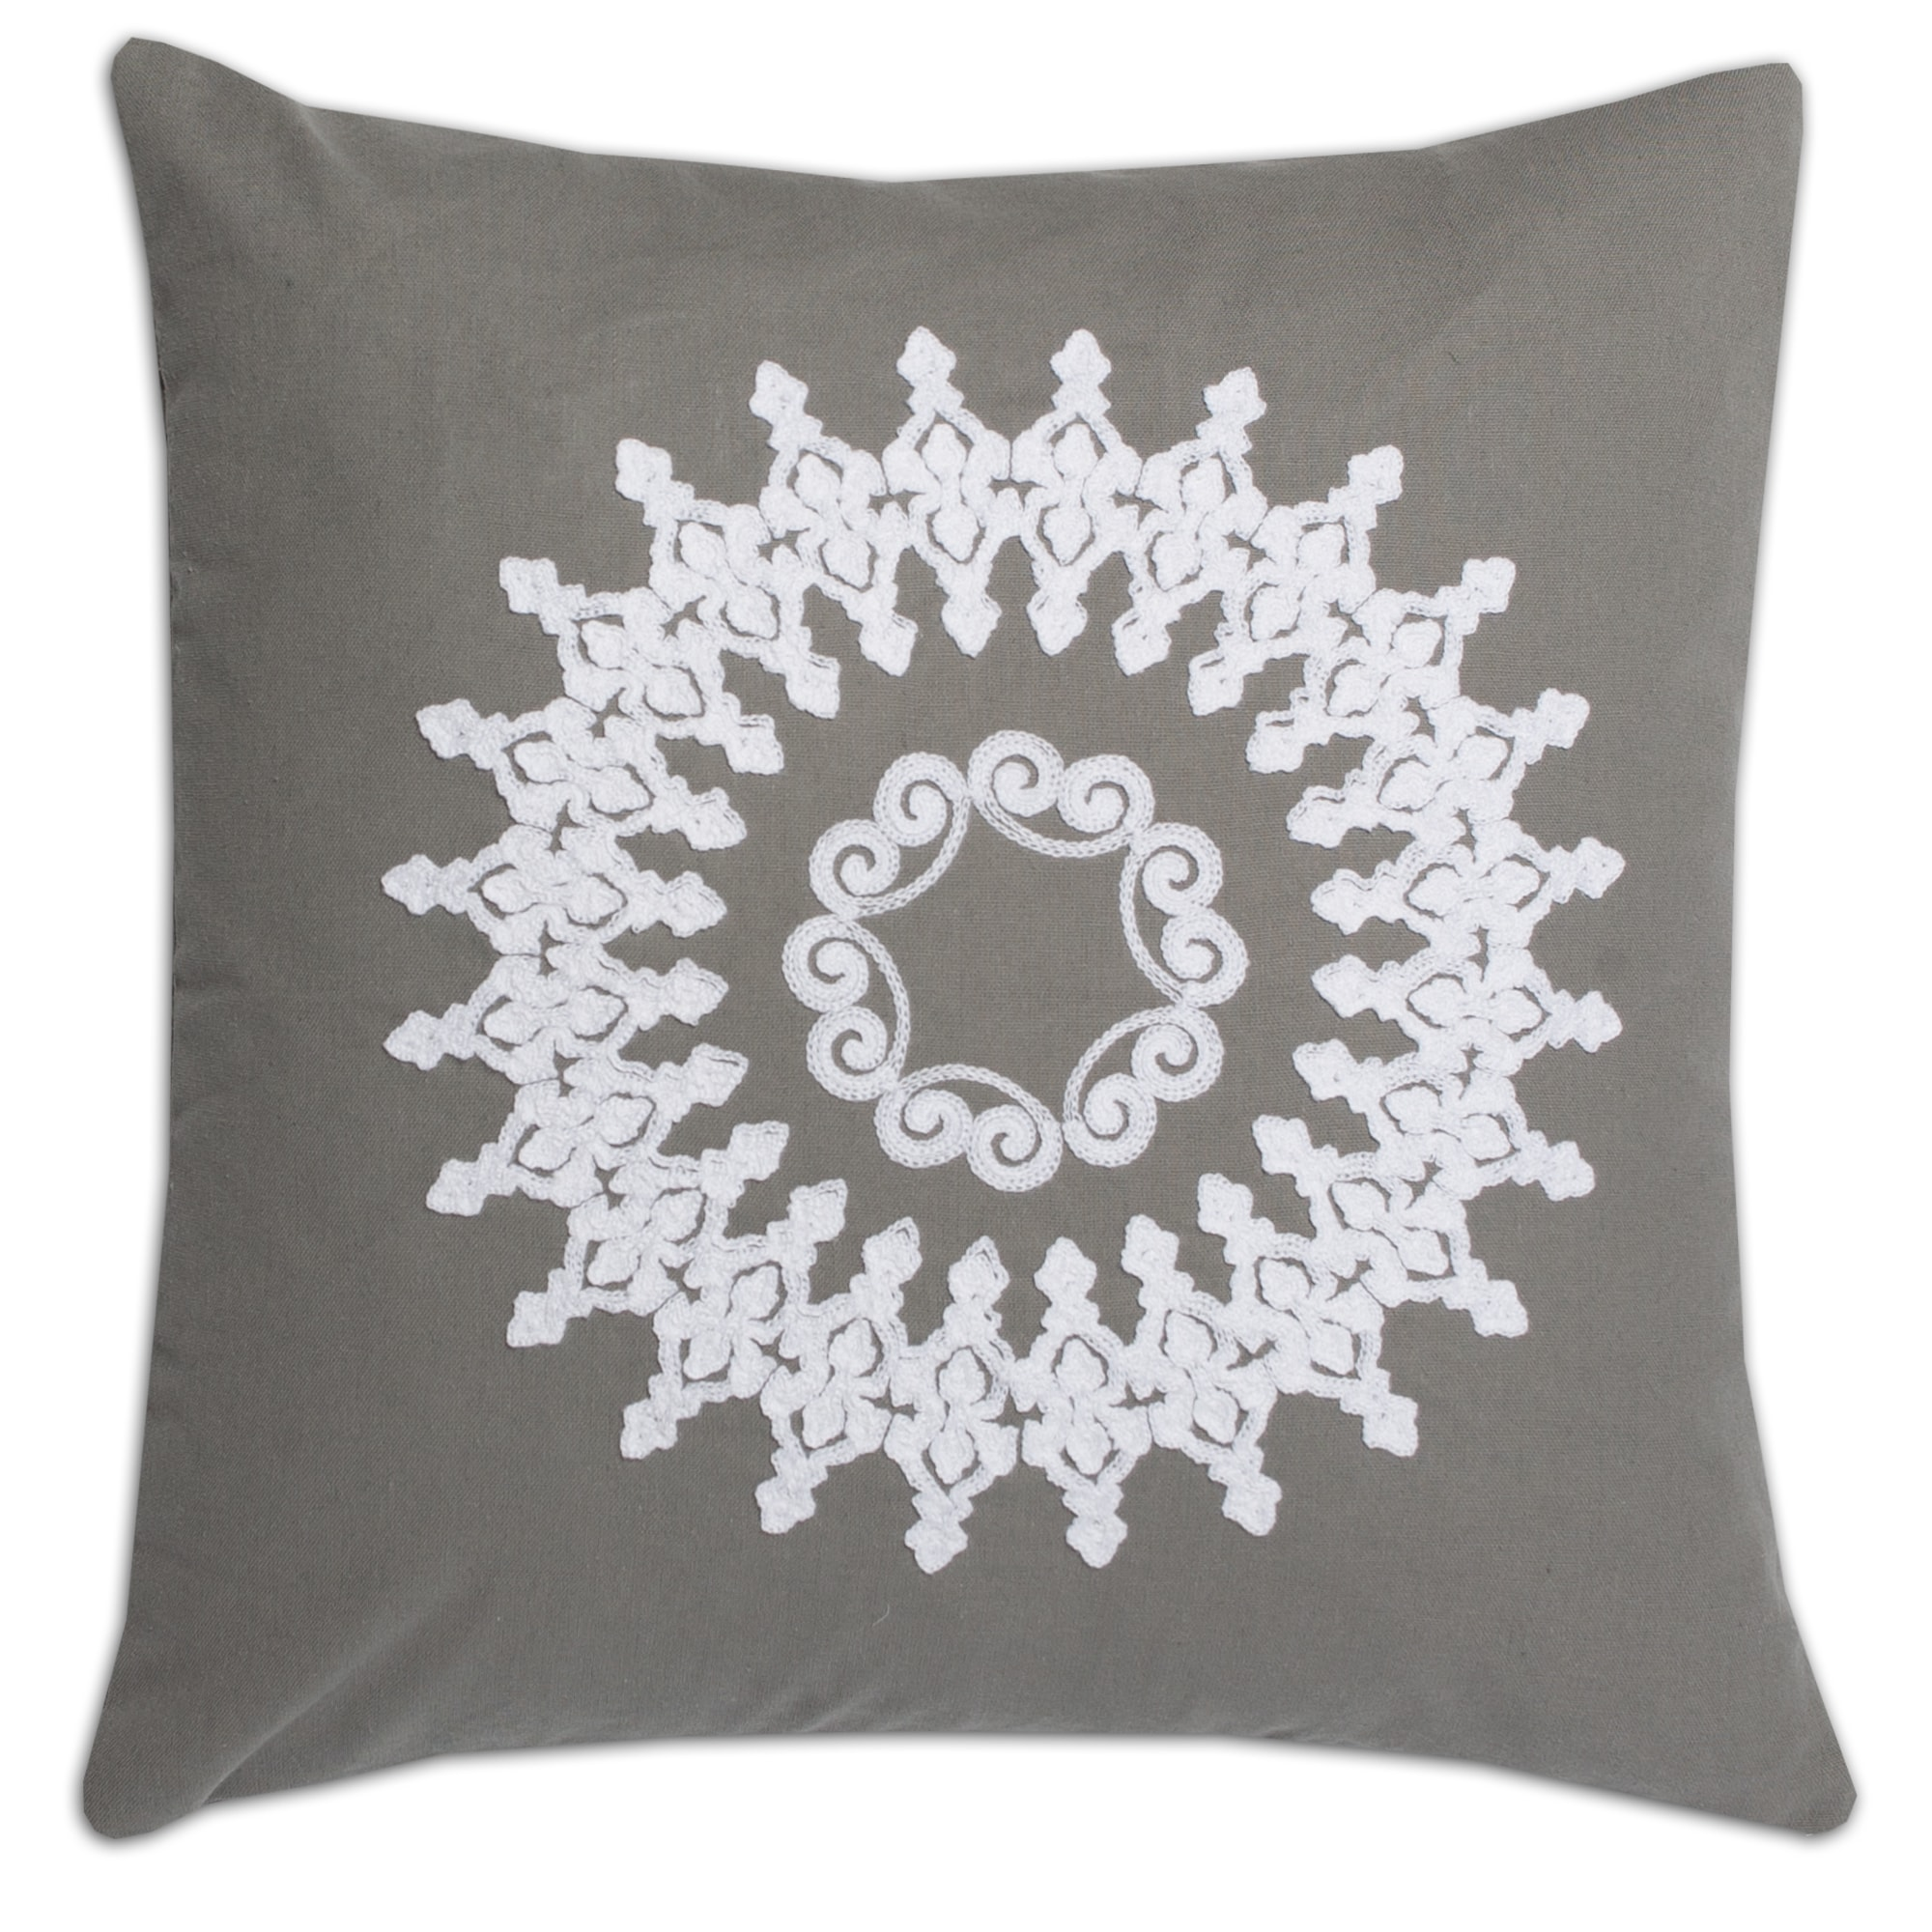 Luxury Linen Blend Embroidered Decorative Throw Pillow Shell With Insert  Options   Free Shipping On Orders Over $45   Overstock.com   17914351 Design Ideas